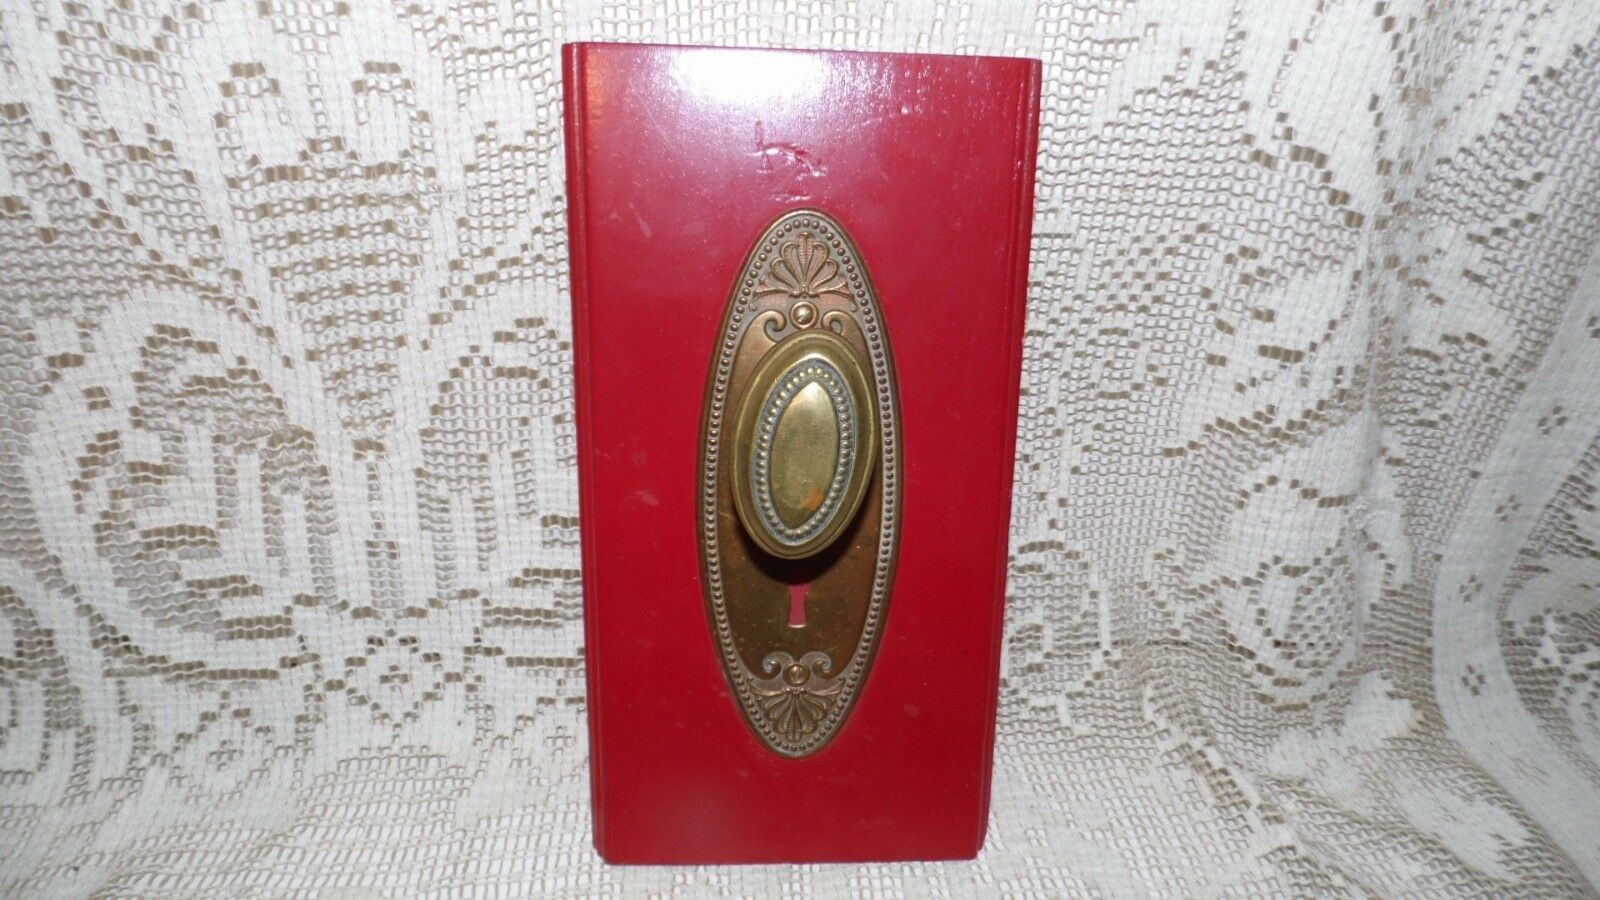 Antique Ornate Brass Door Knob On Wood Plaque Wall Hanging Wash Clth Holder Etc.